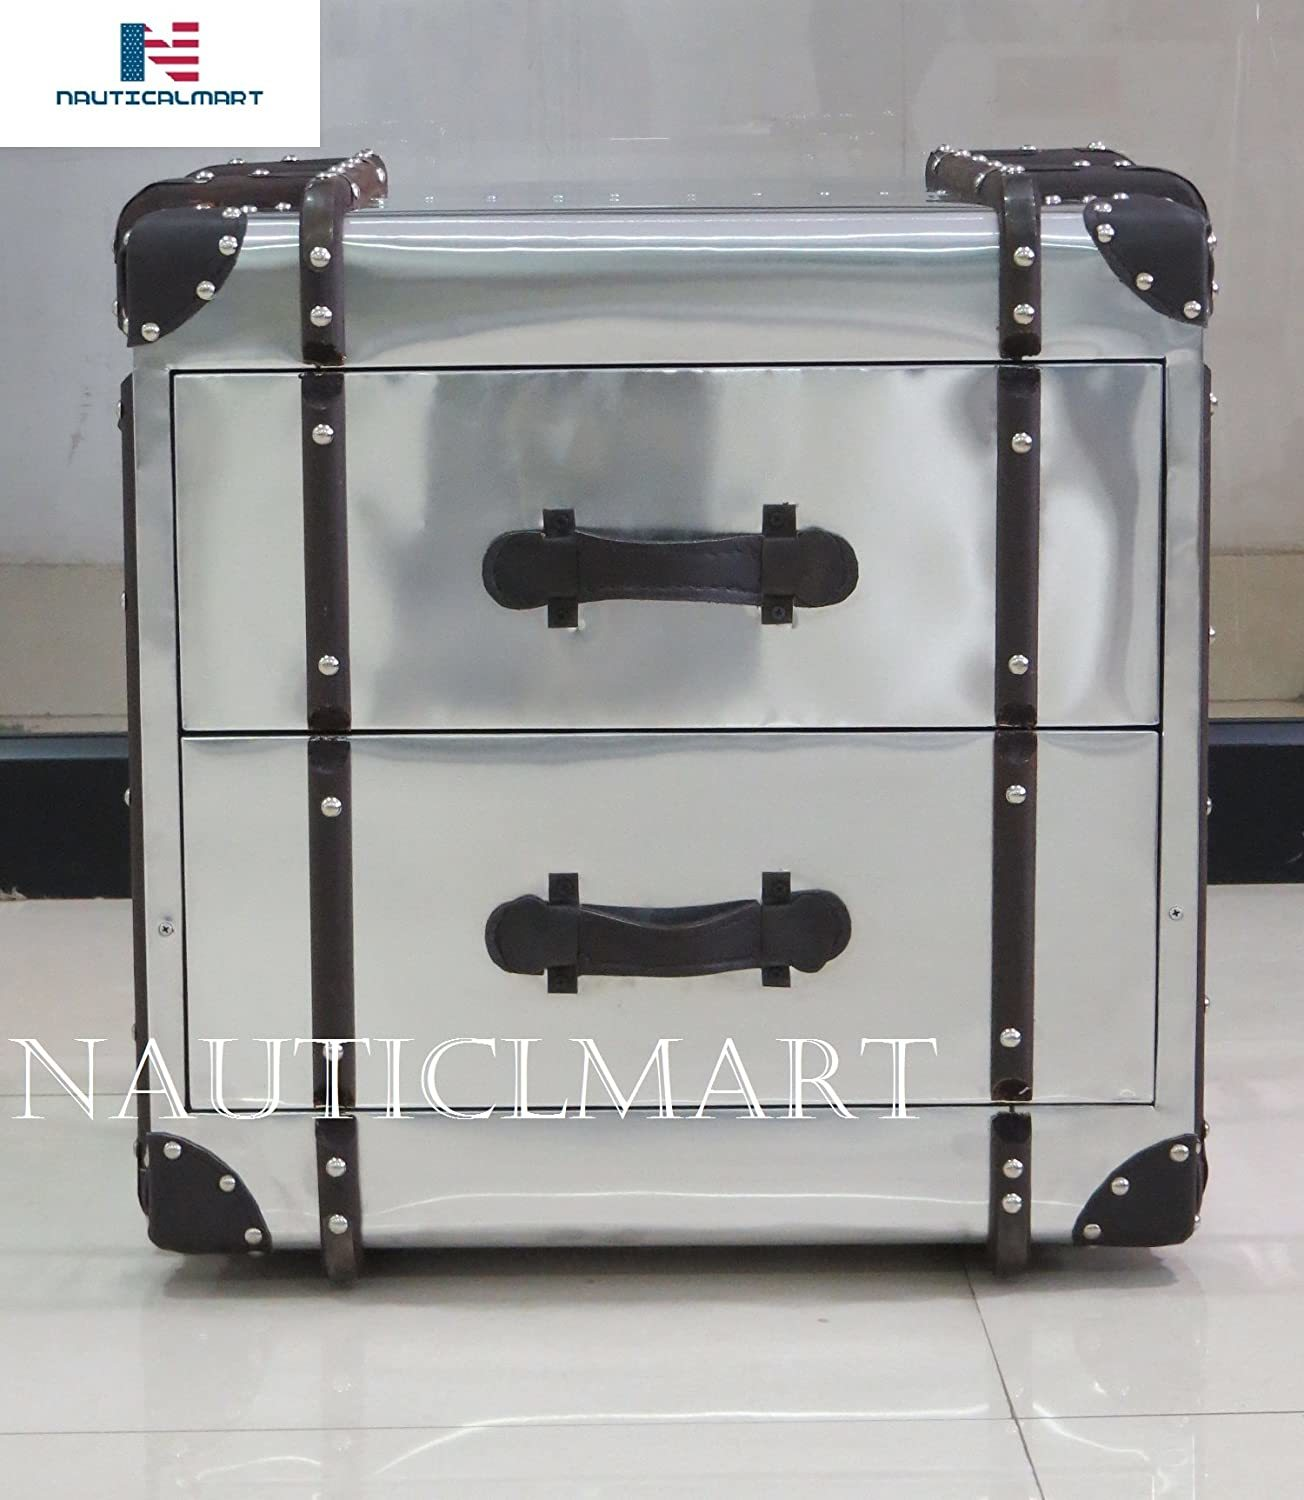 NauticalMart Aviator Side Table - Metal Side Table - Metal End Table with 2 Drawers